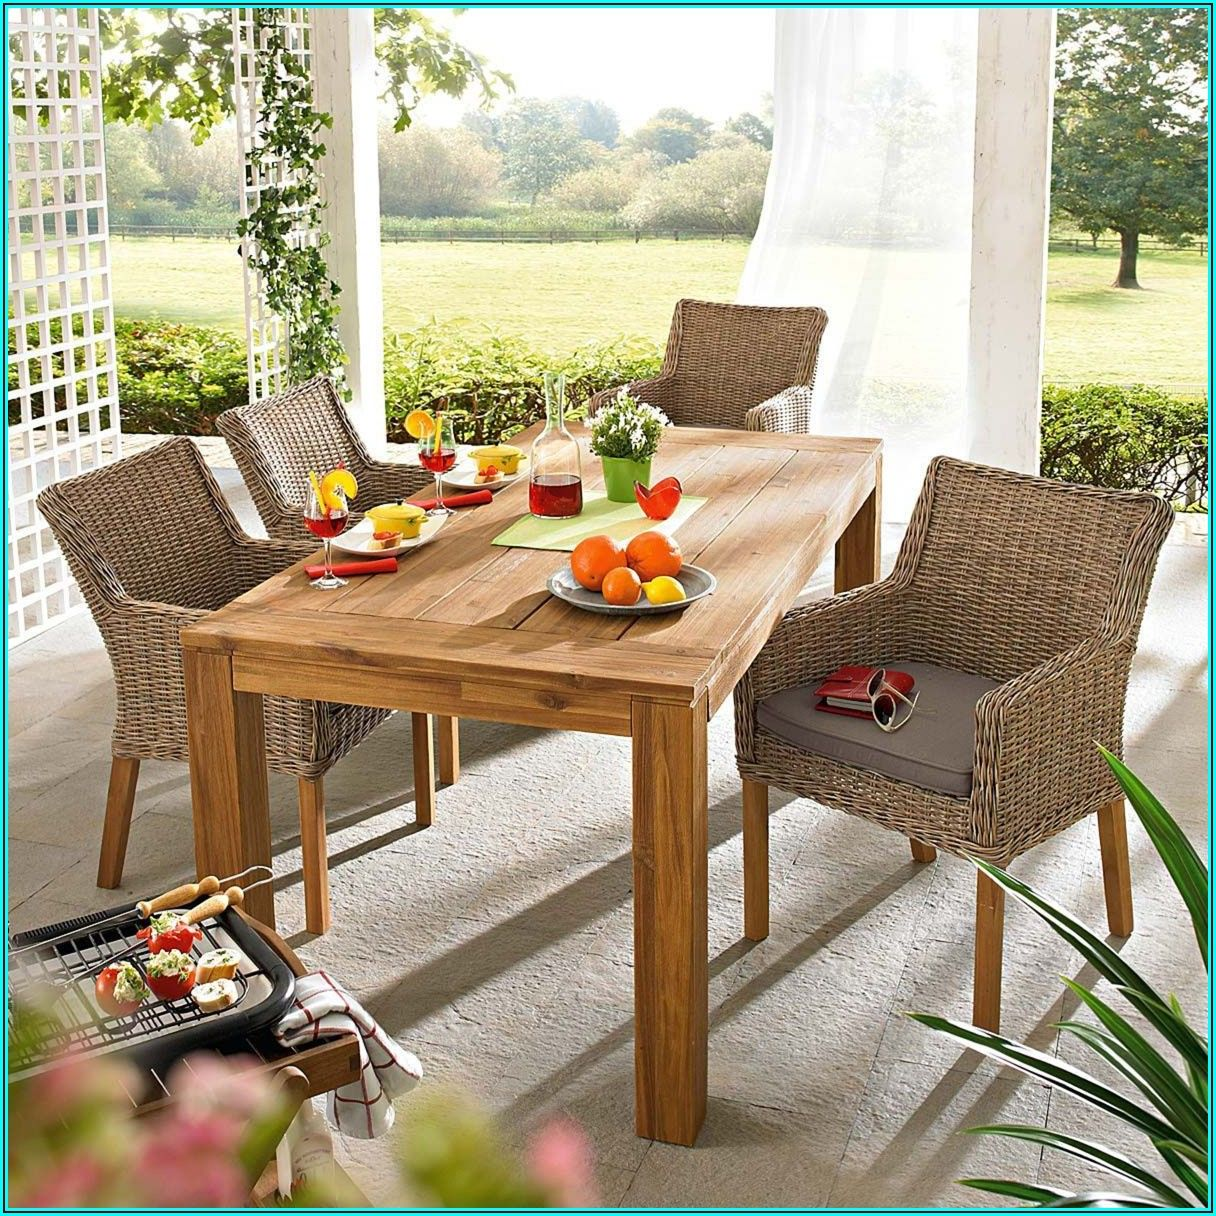 Does Homegoods Have Patio Furniture